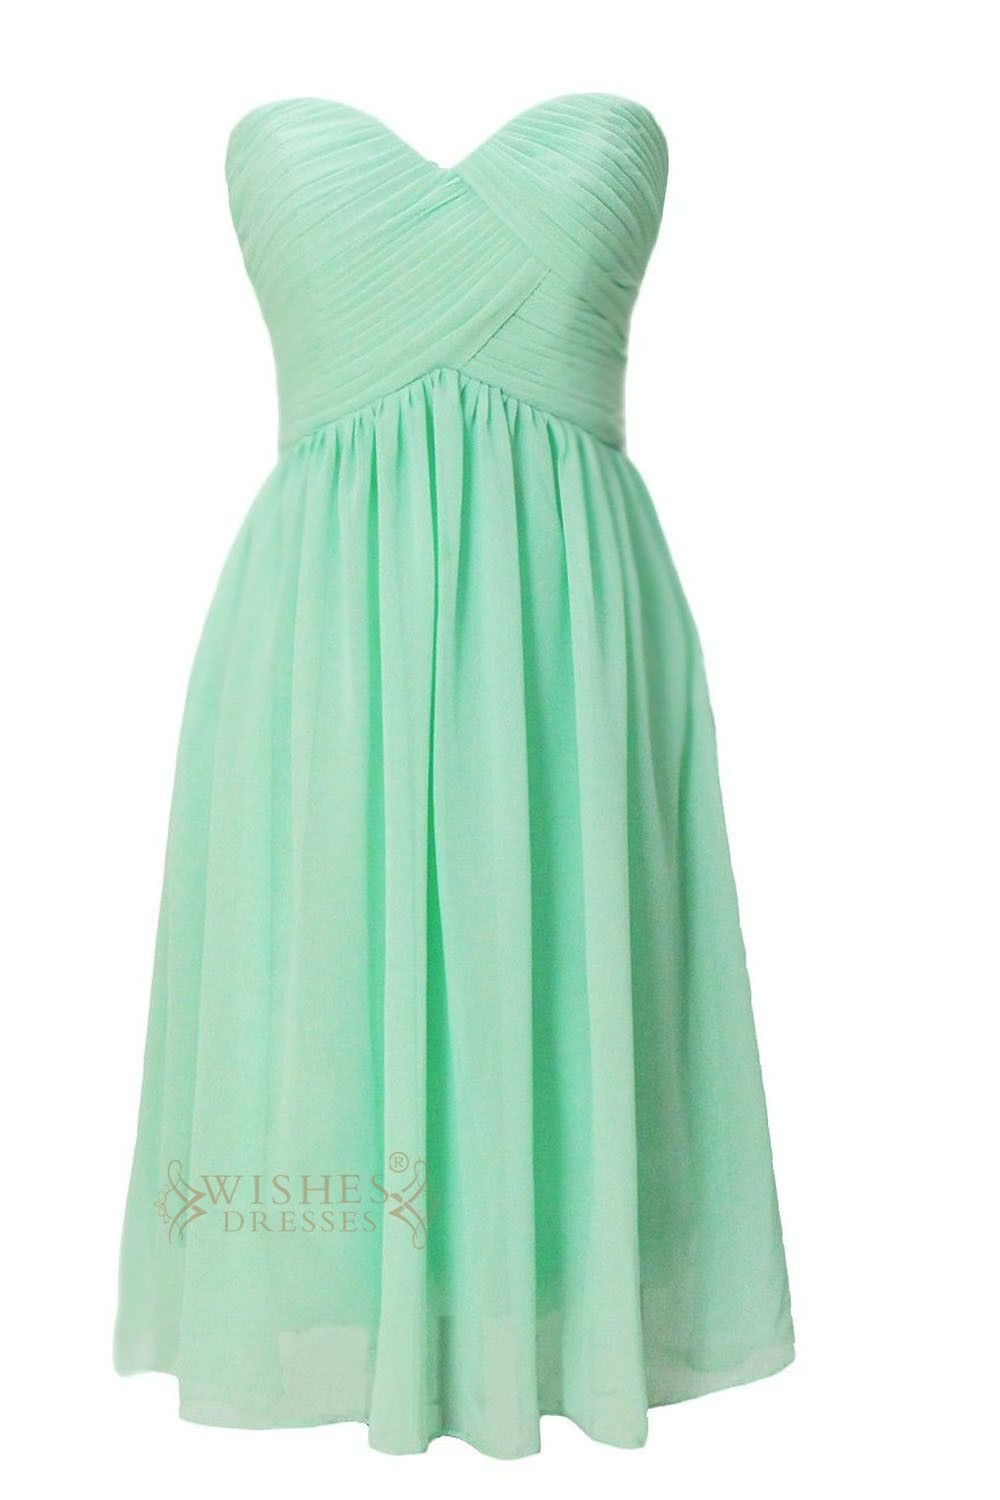 Aline sweetheart mint chiffon knee length bridesmaid dress am